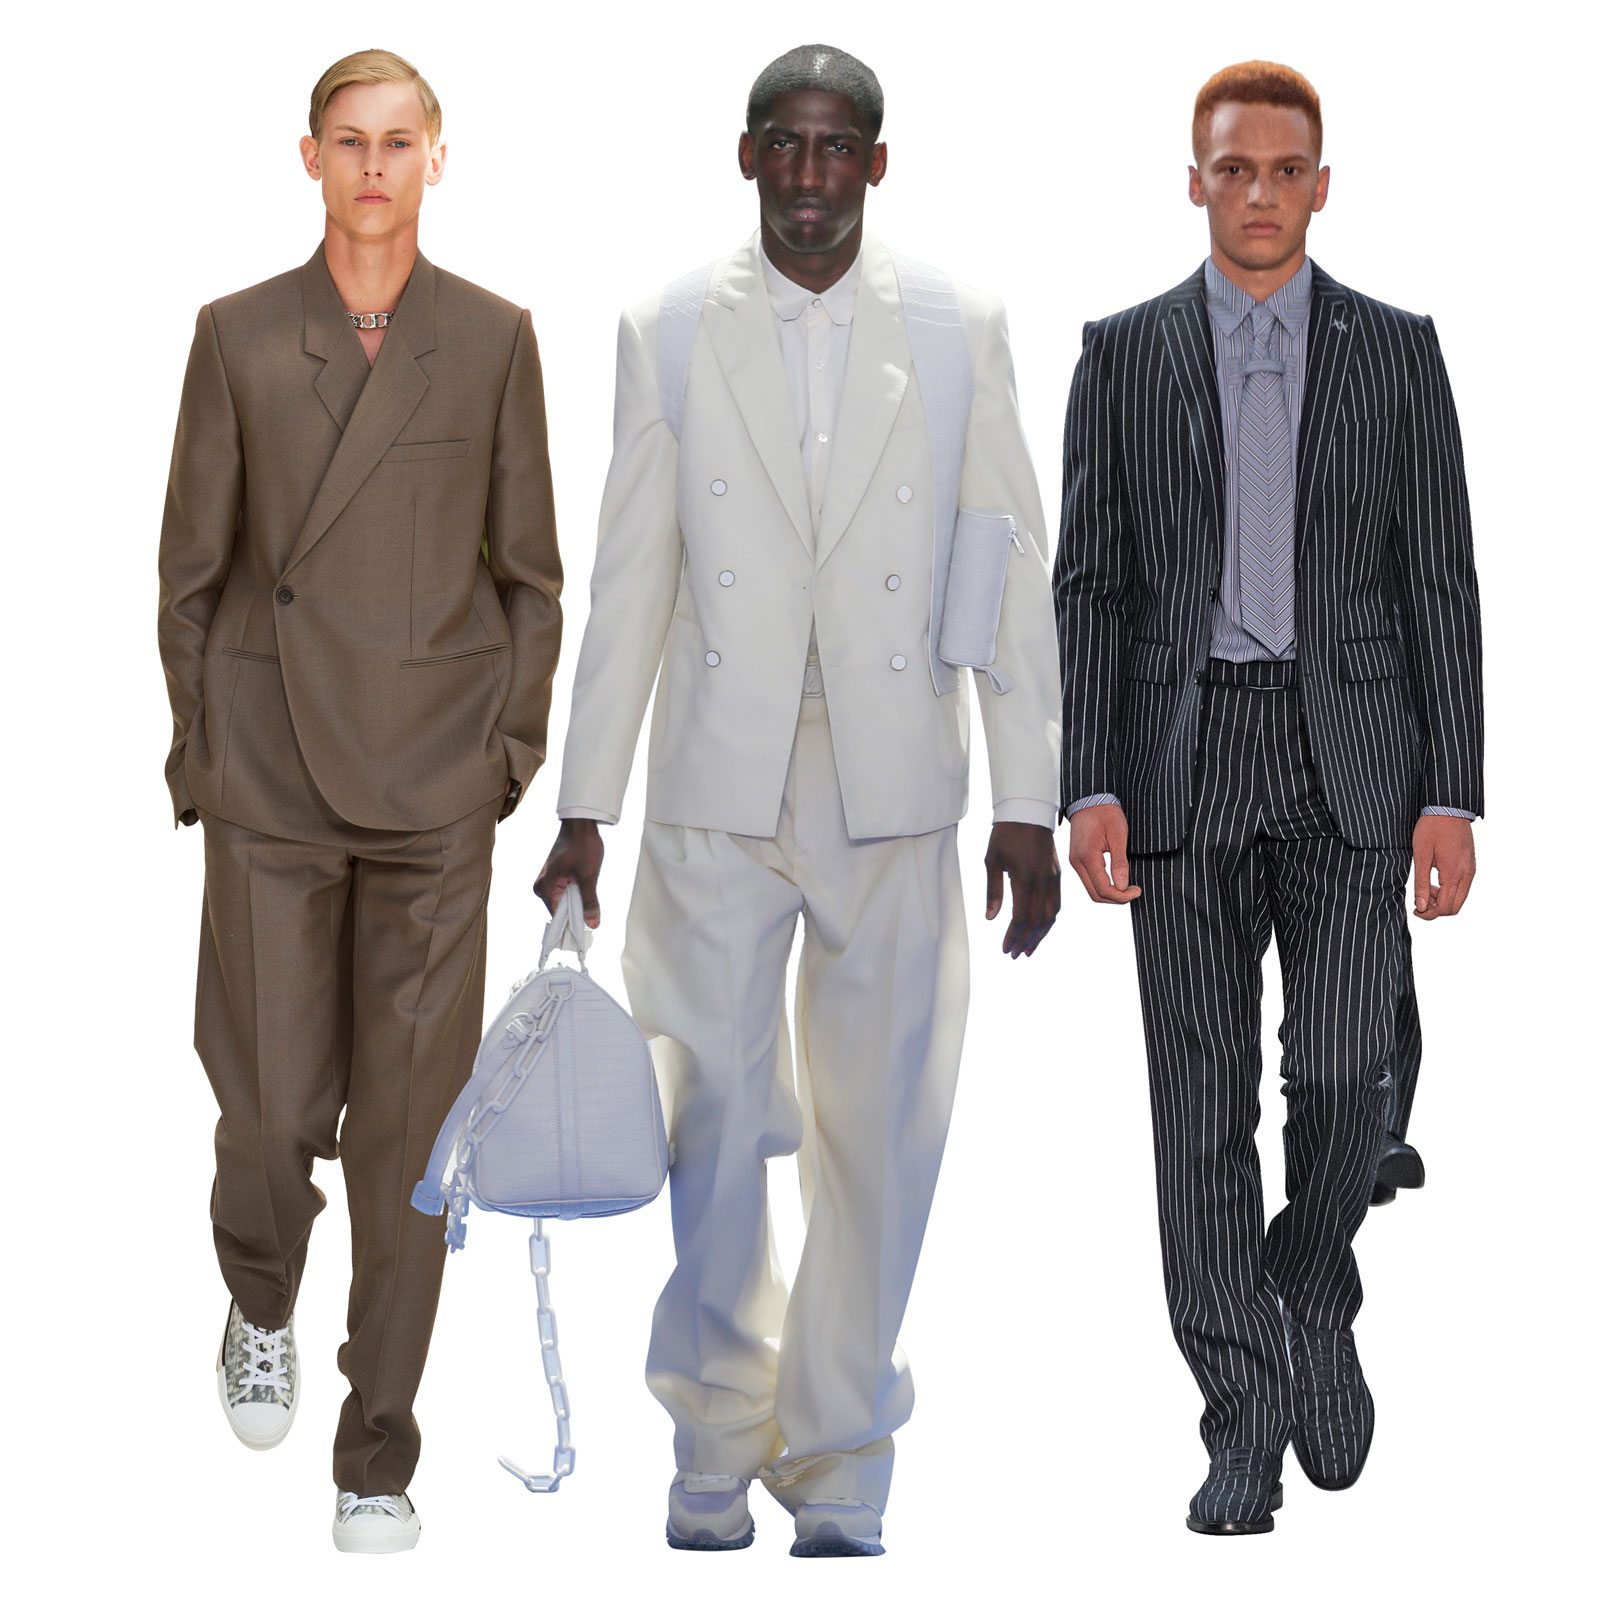 ec8e787a43 Menswear's cool new tailoring   How To Spend It